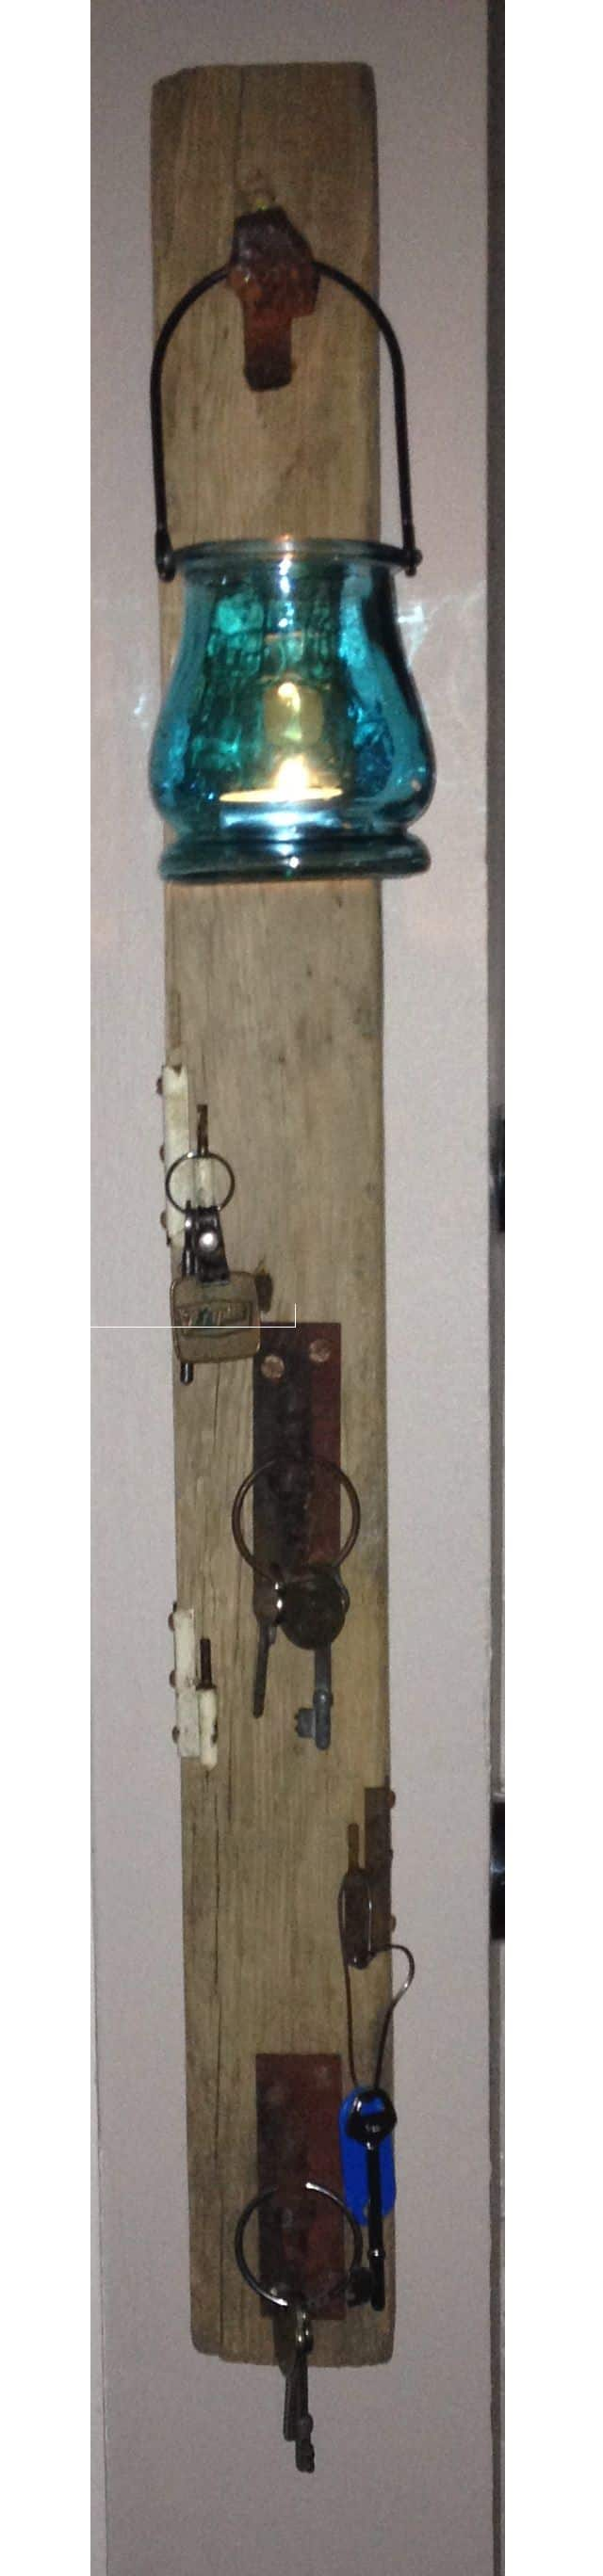 Key Holder From Recycled Wood Accessories Wood & Organic